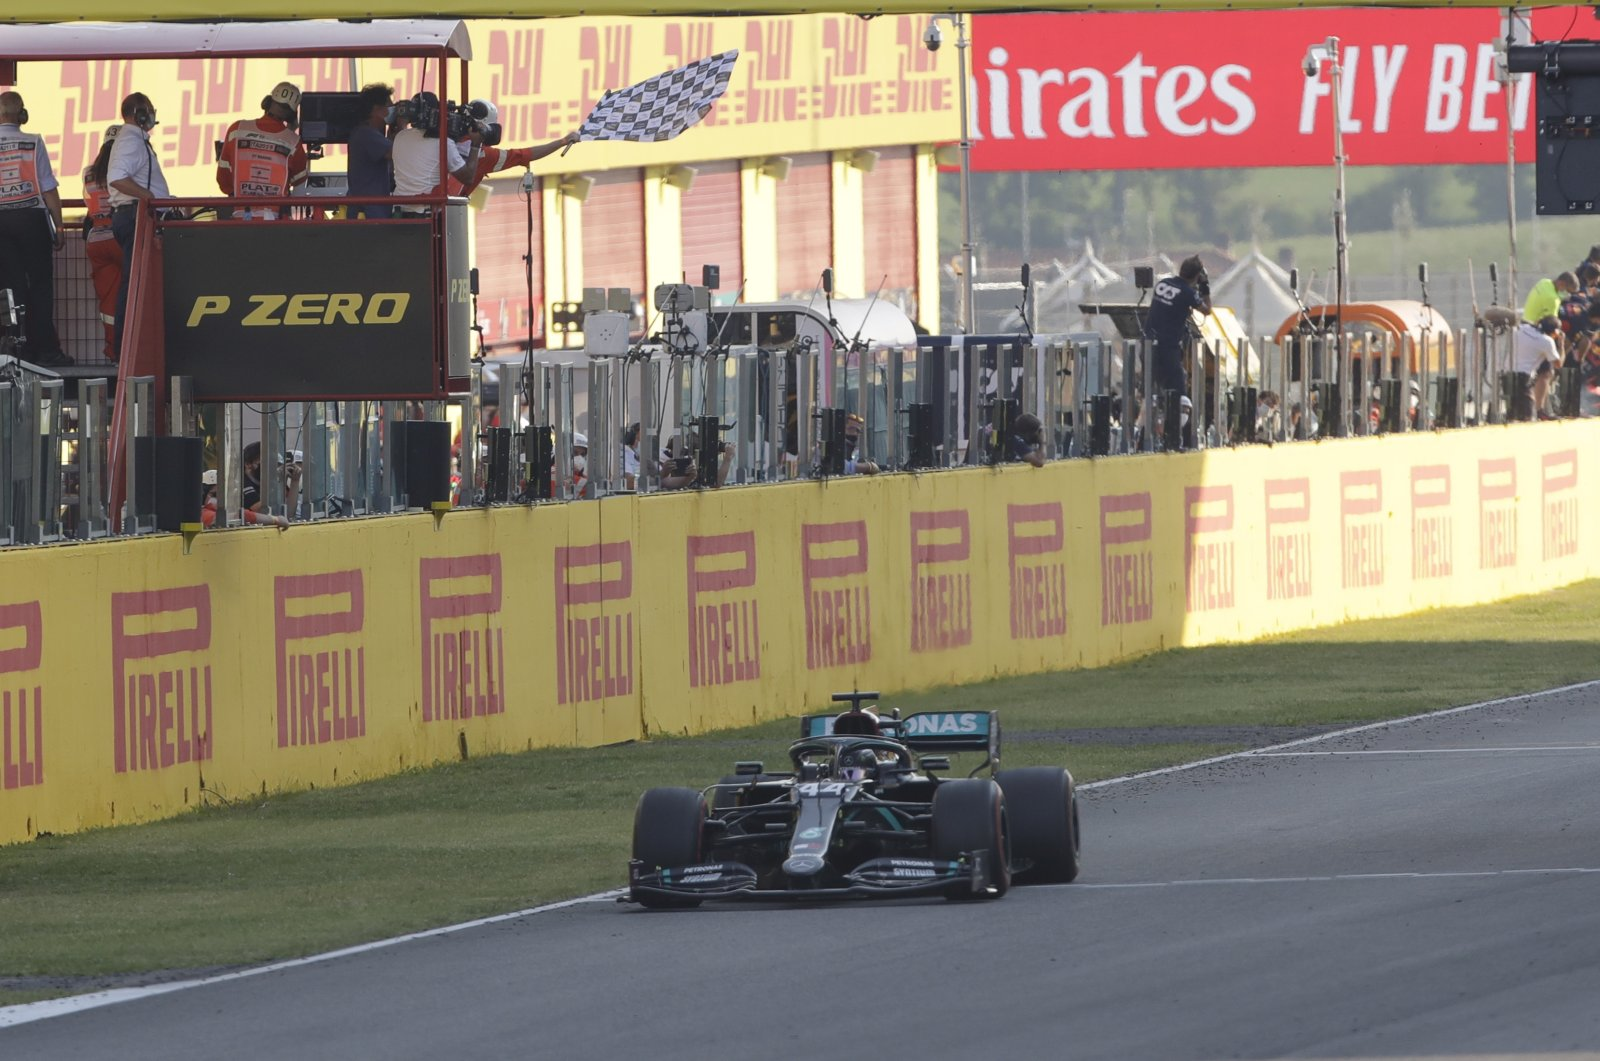 Mercedes driver Lewis Hamilton gets the checkered flag to win the Formula 1 Tuscany GP, in Scarperia, Italy, Sept. 13, 2020. (AP Photo)